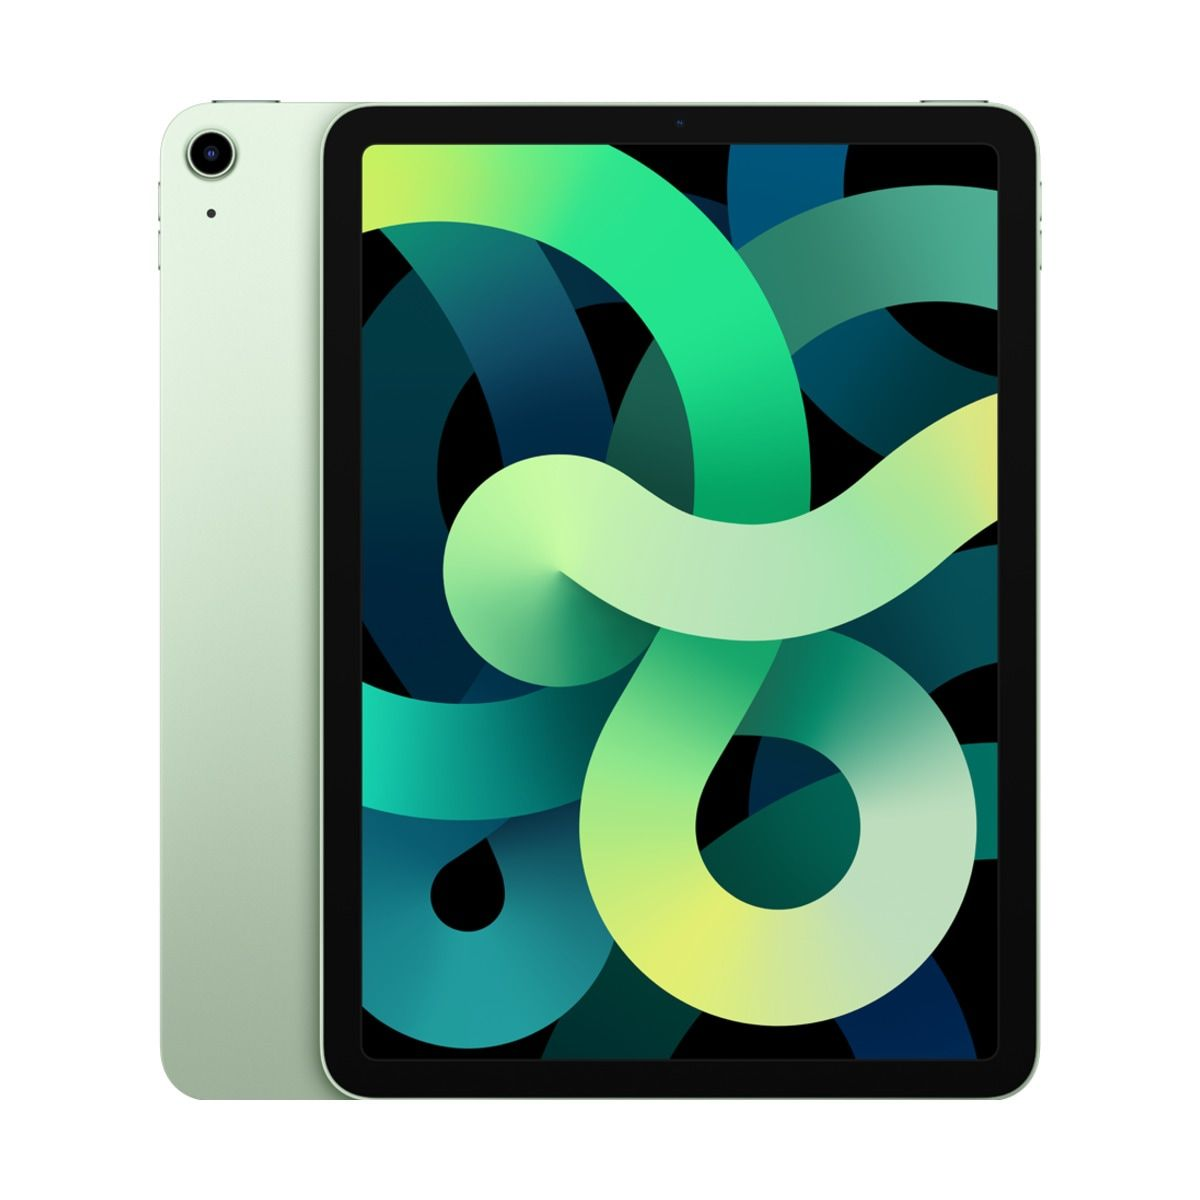 iPad Air Wi-Fi + Cell 256GB - Green / SK